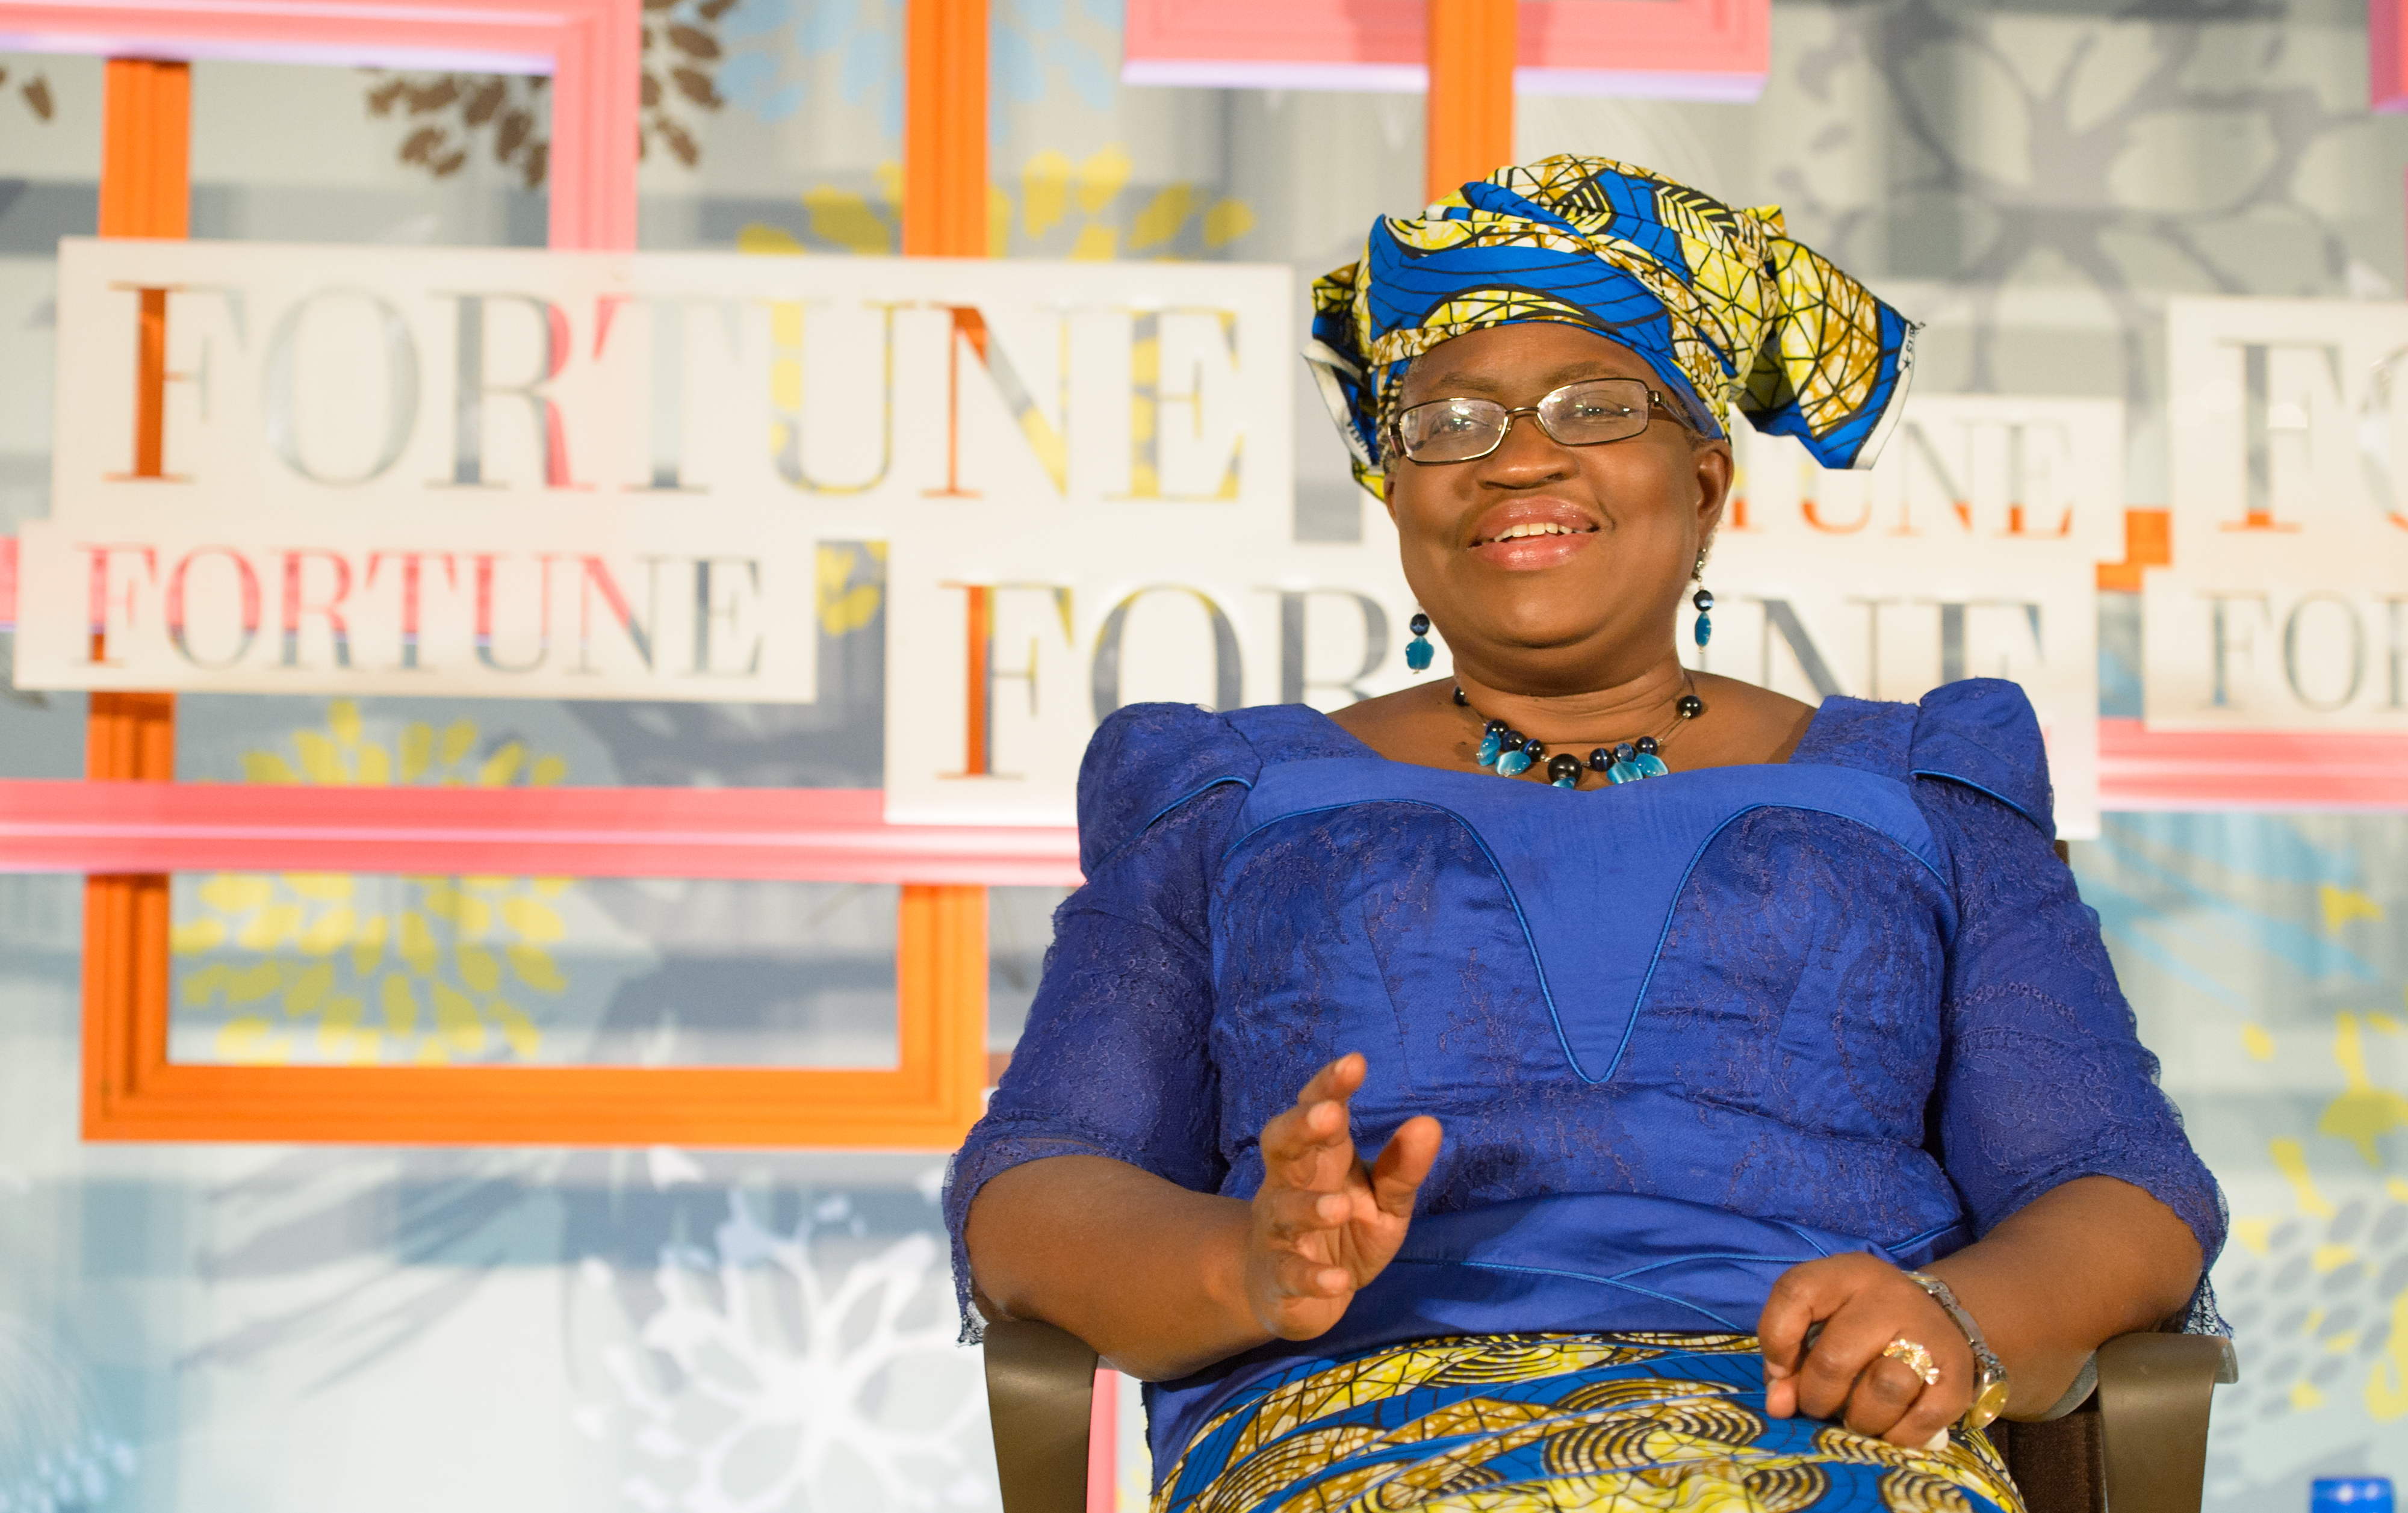 Ngozi Okonjo-Iweala speaking at the Fortune Most Powerful Women International event on Tuesday at London's Rosewood Hotel.